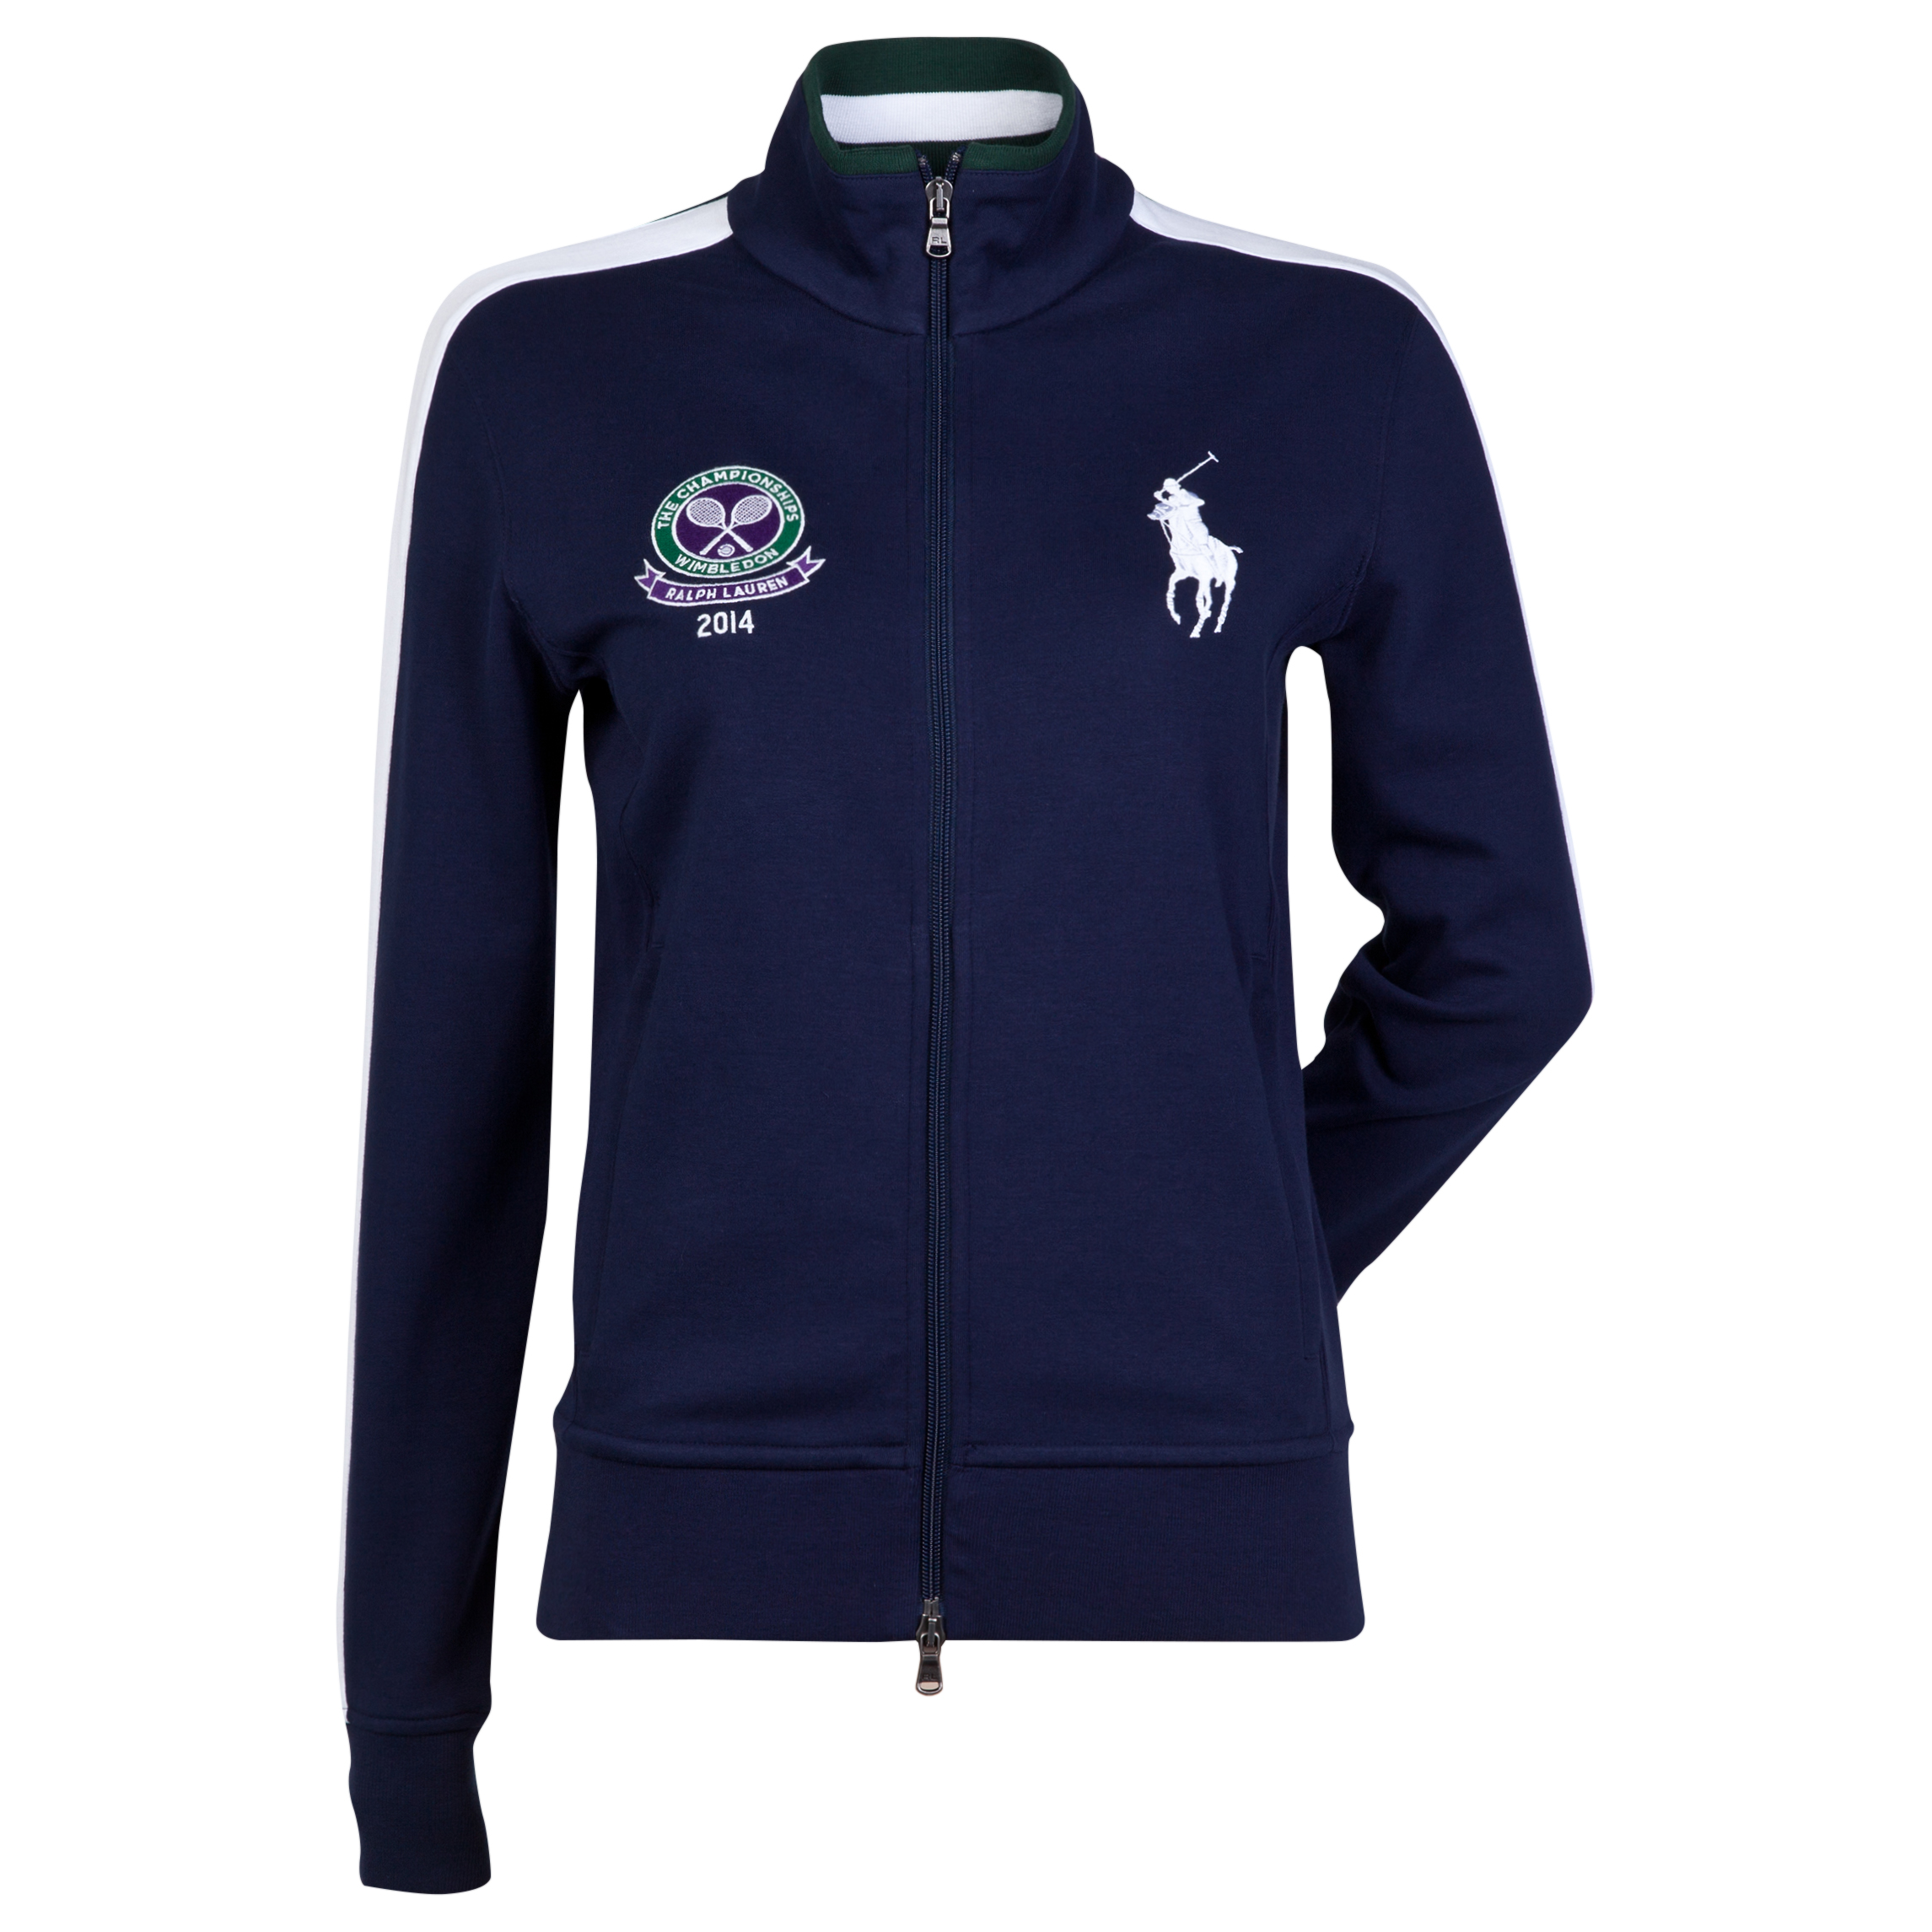 Wimbledon Ralph Lauren Wimbledon Ball Girl Warm Up Jacket - Womens Navy